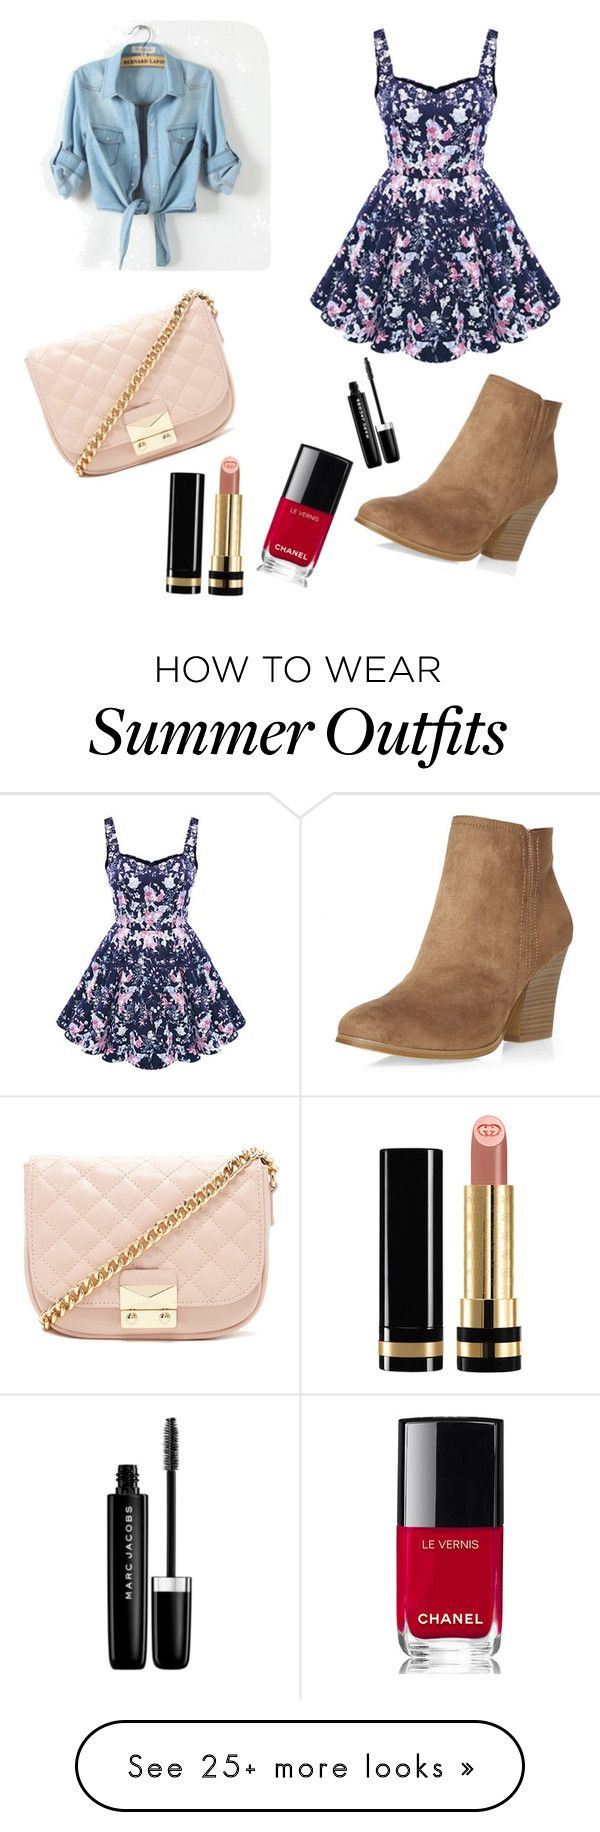 """Lydia Martin Inspired Outfit - Motel California S3Ep06"" by emily-hasted on Polyvore featuring Dorothy Perkins, Marc Jacobs, Gucci, Forever 21 and Chanel"